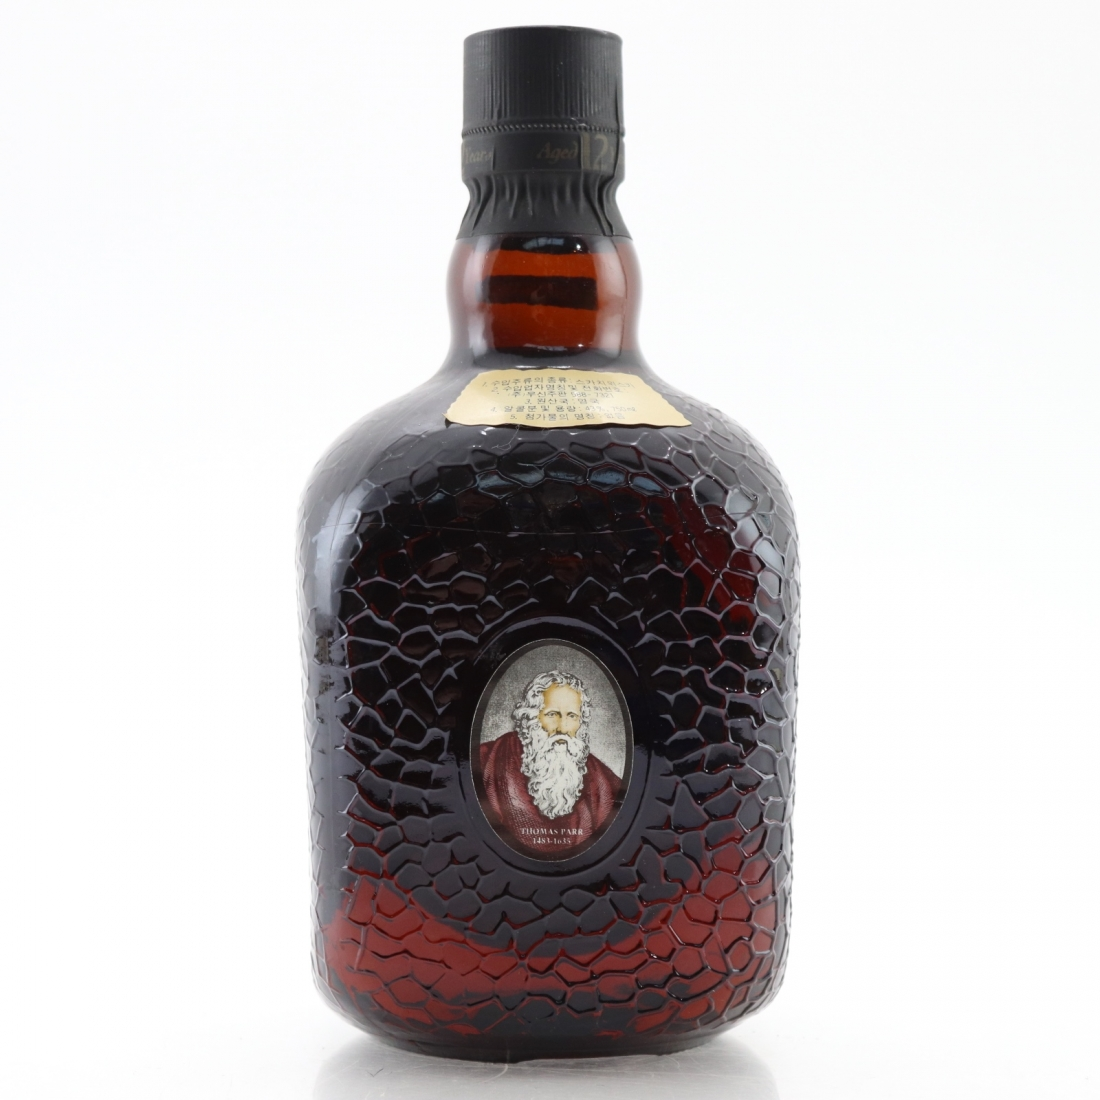 Grand Old Parr 12 Year Old 75cl